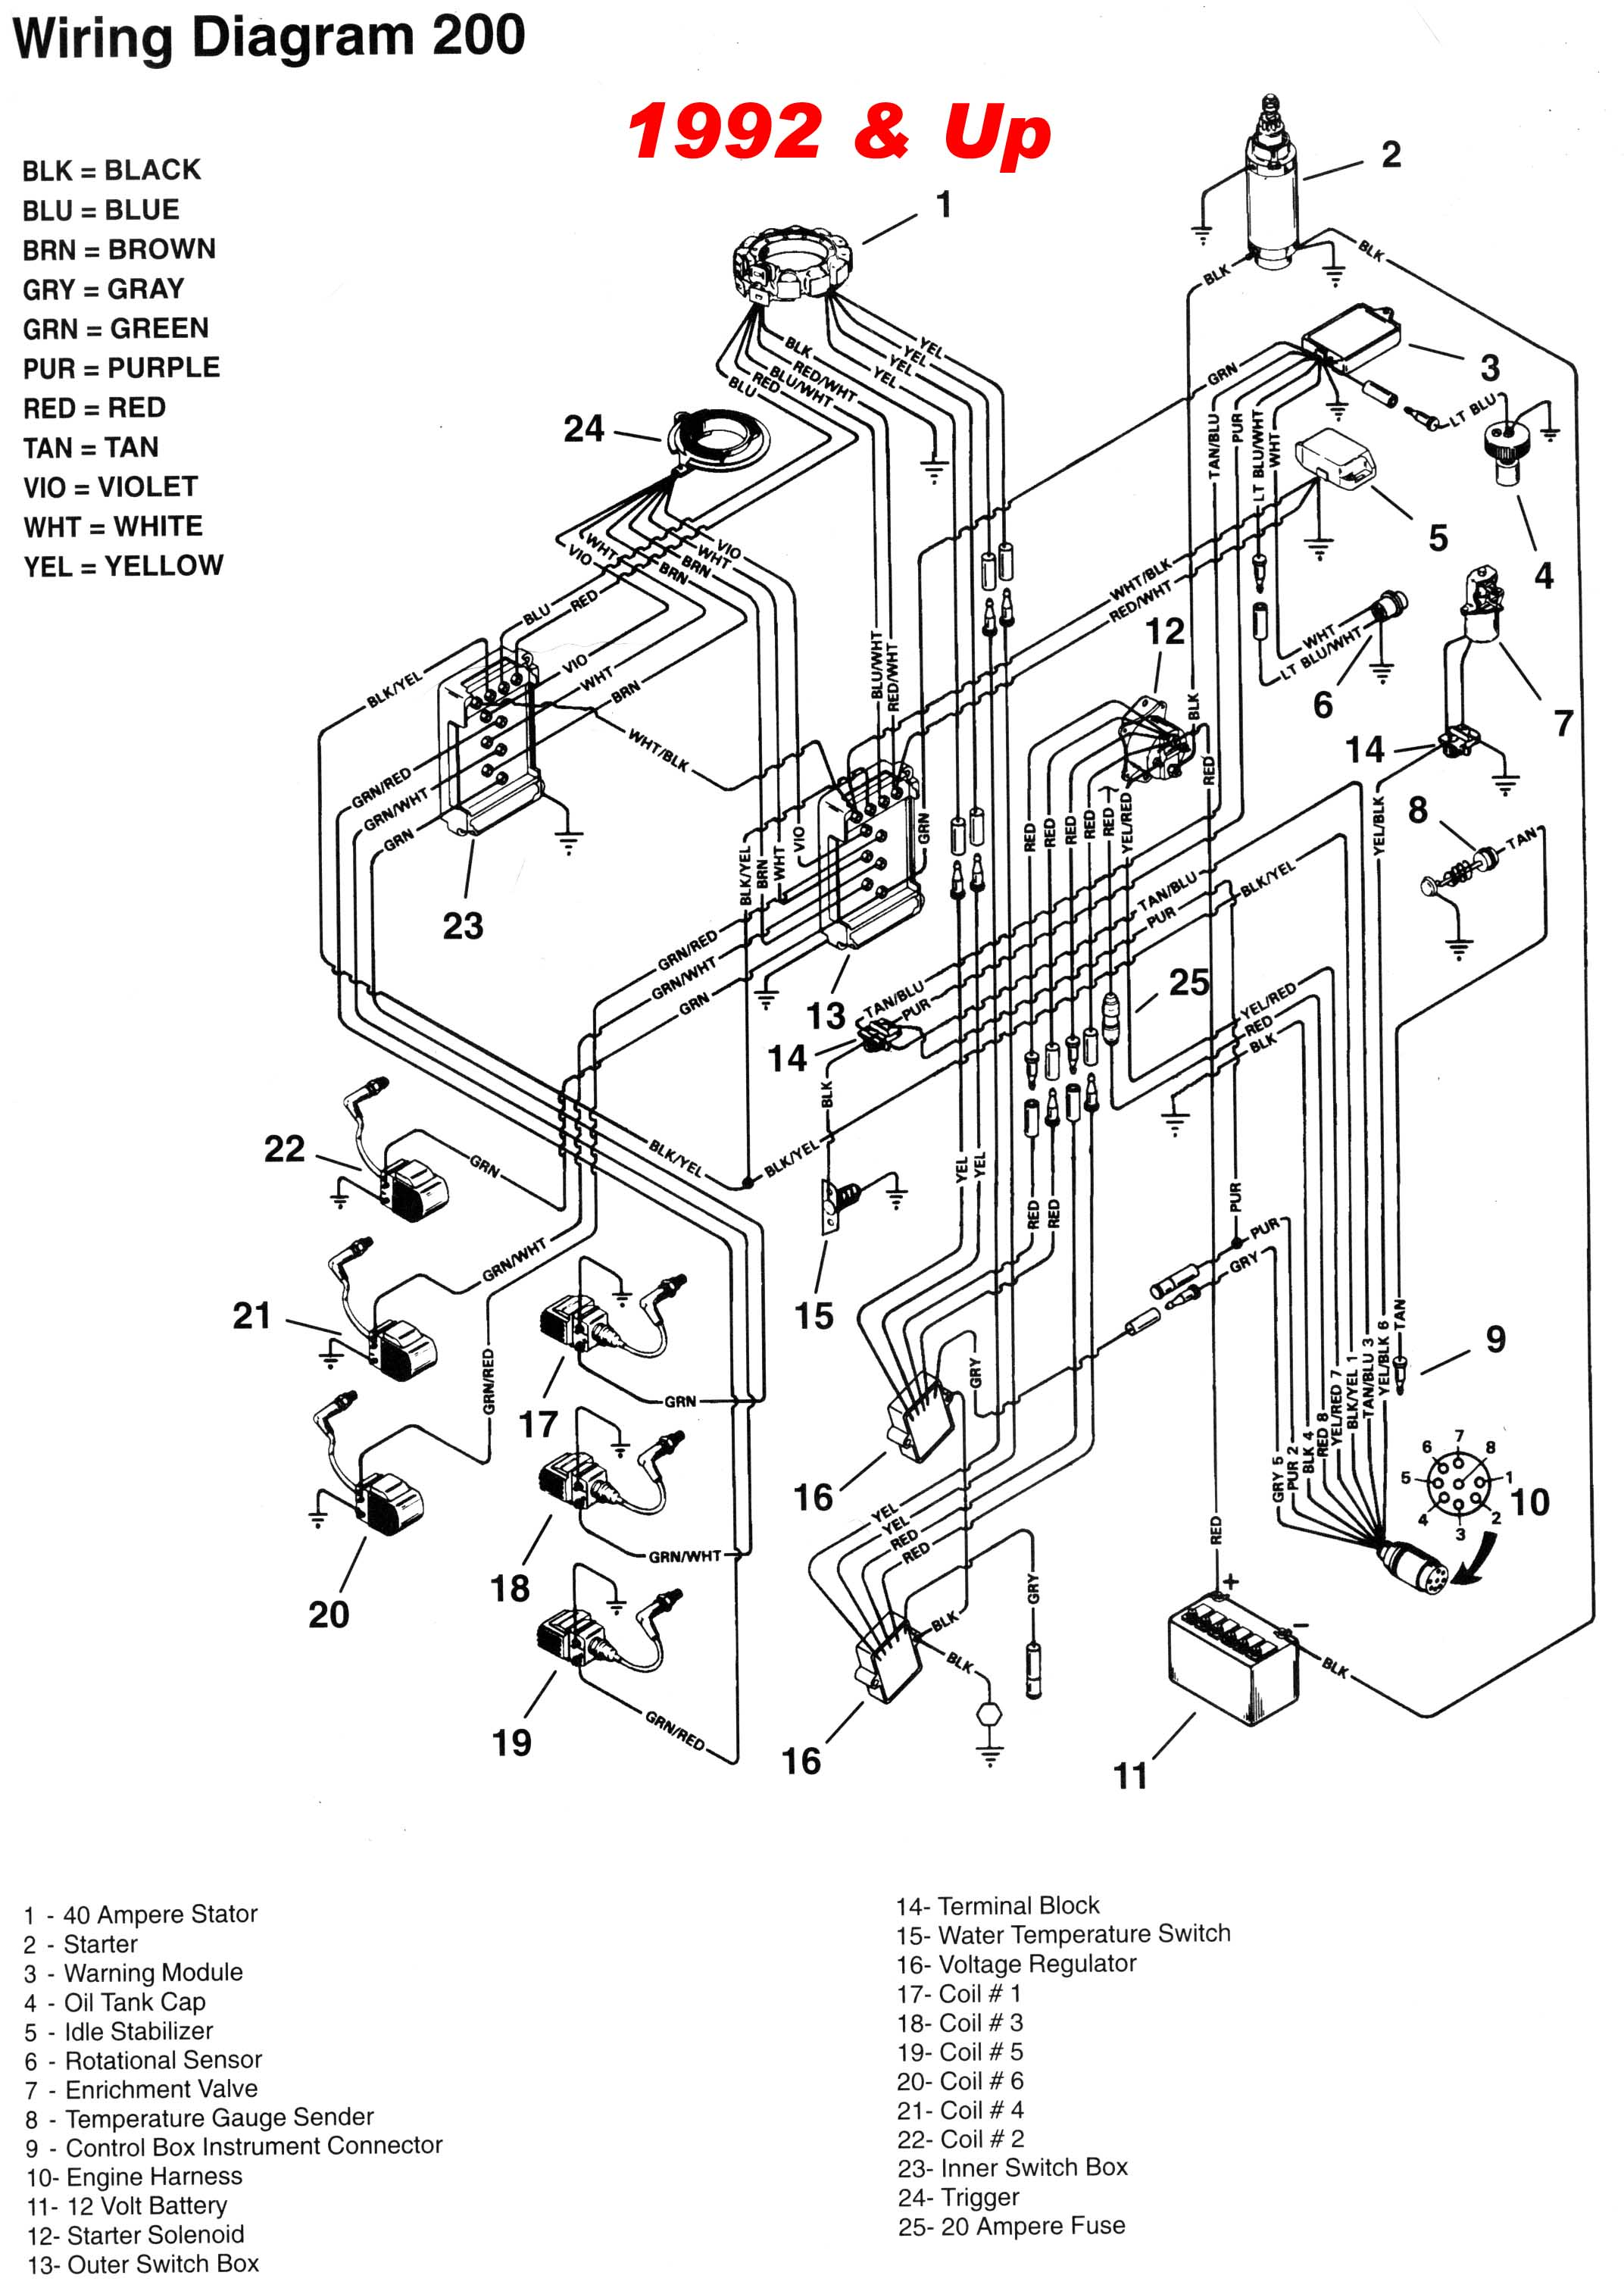 mercury_92up_200_wiring mercury optimax wiring diagram mercury verado wiring diagram Sony Car Stereo Wiring Harness at creativeand.co